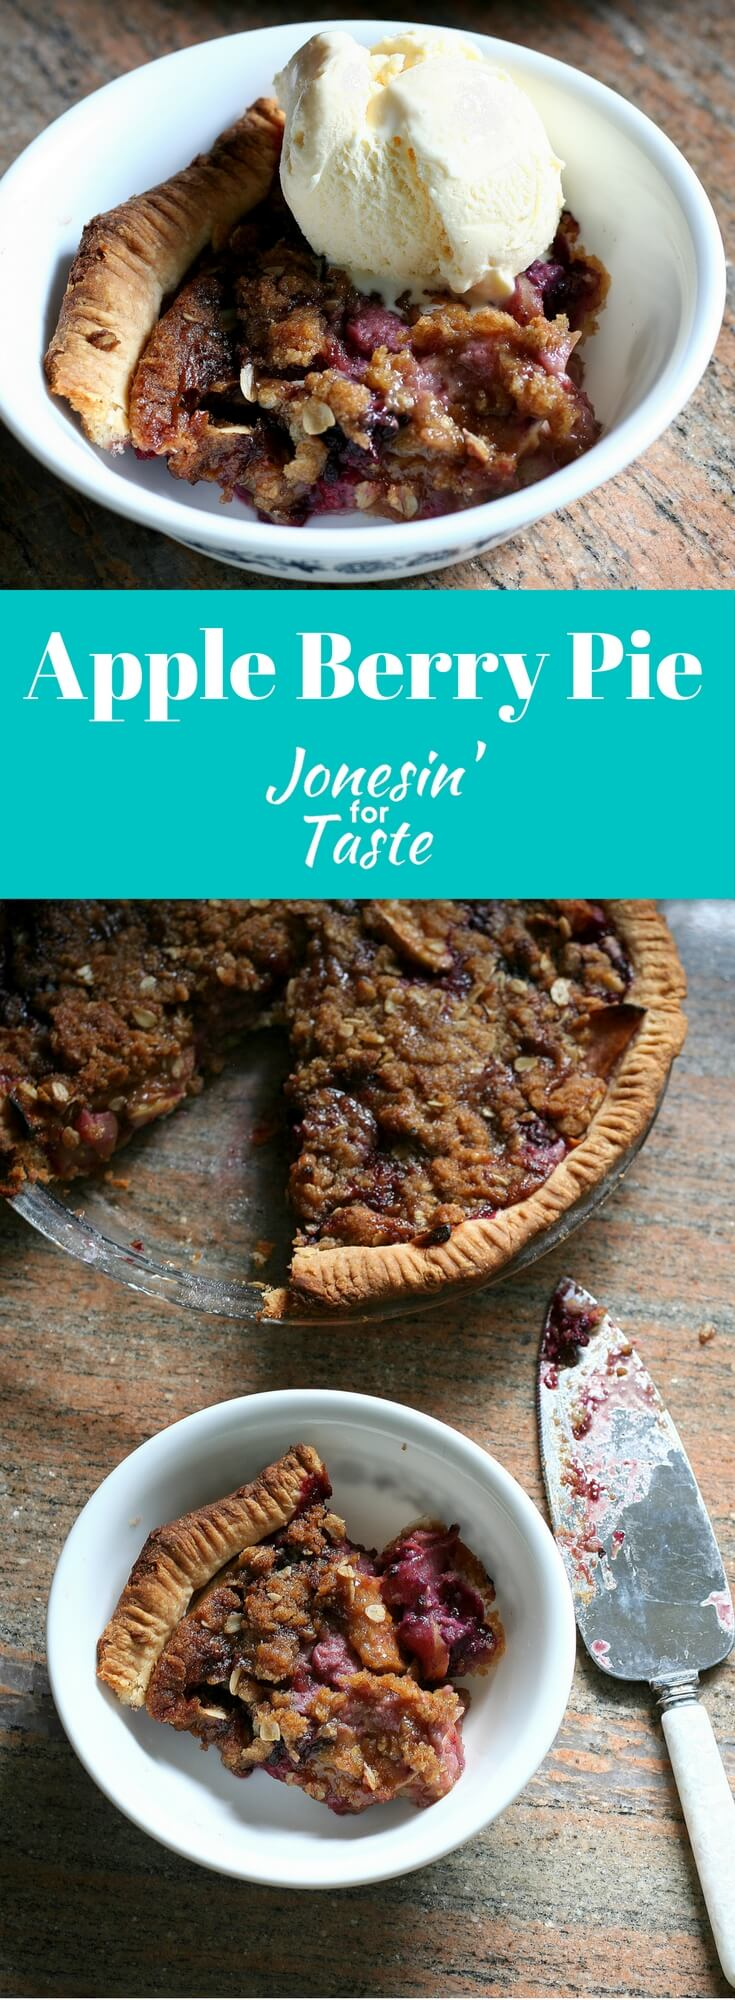 Sour Cream Apple Triple Berry Pie has an oatmeal crumble topping, apples, and frozen berries combined for a flavorful pie perfect for any gathering.